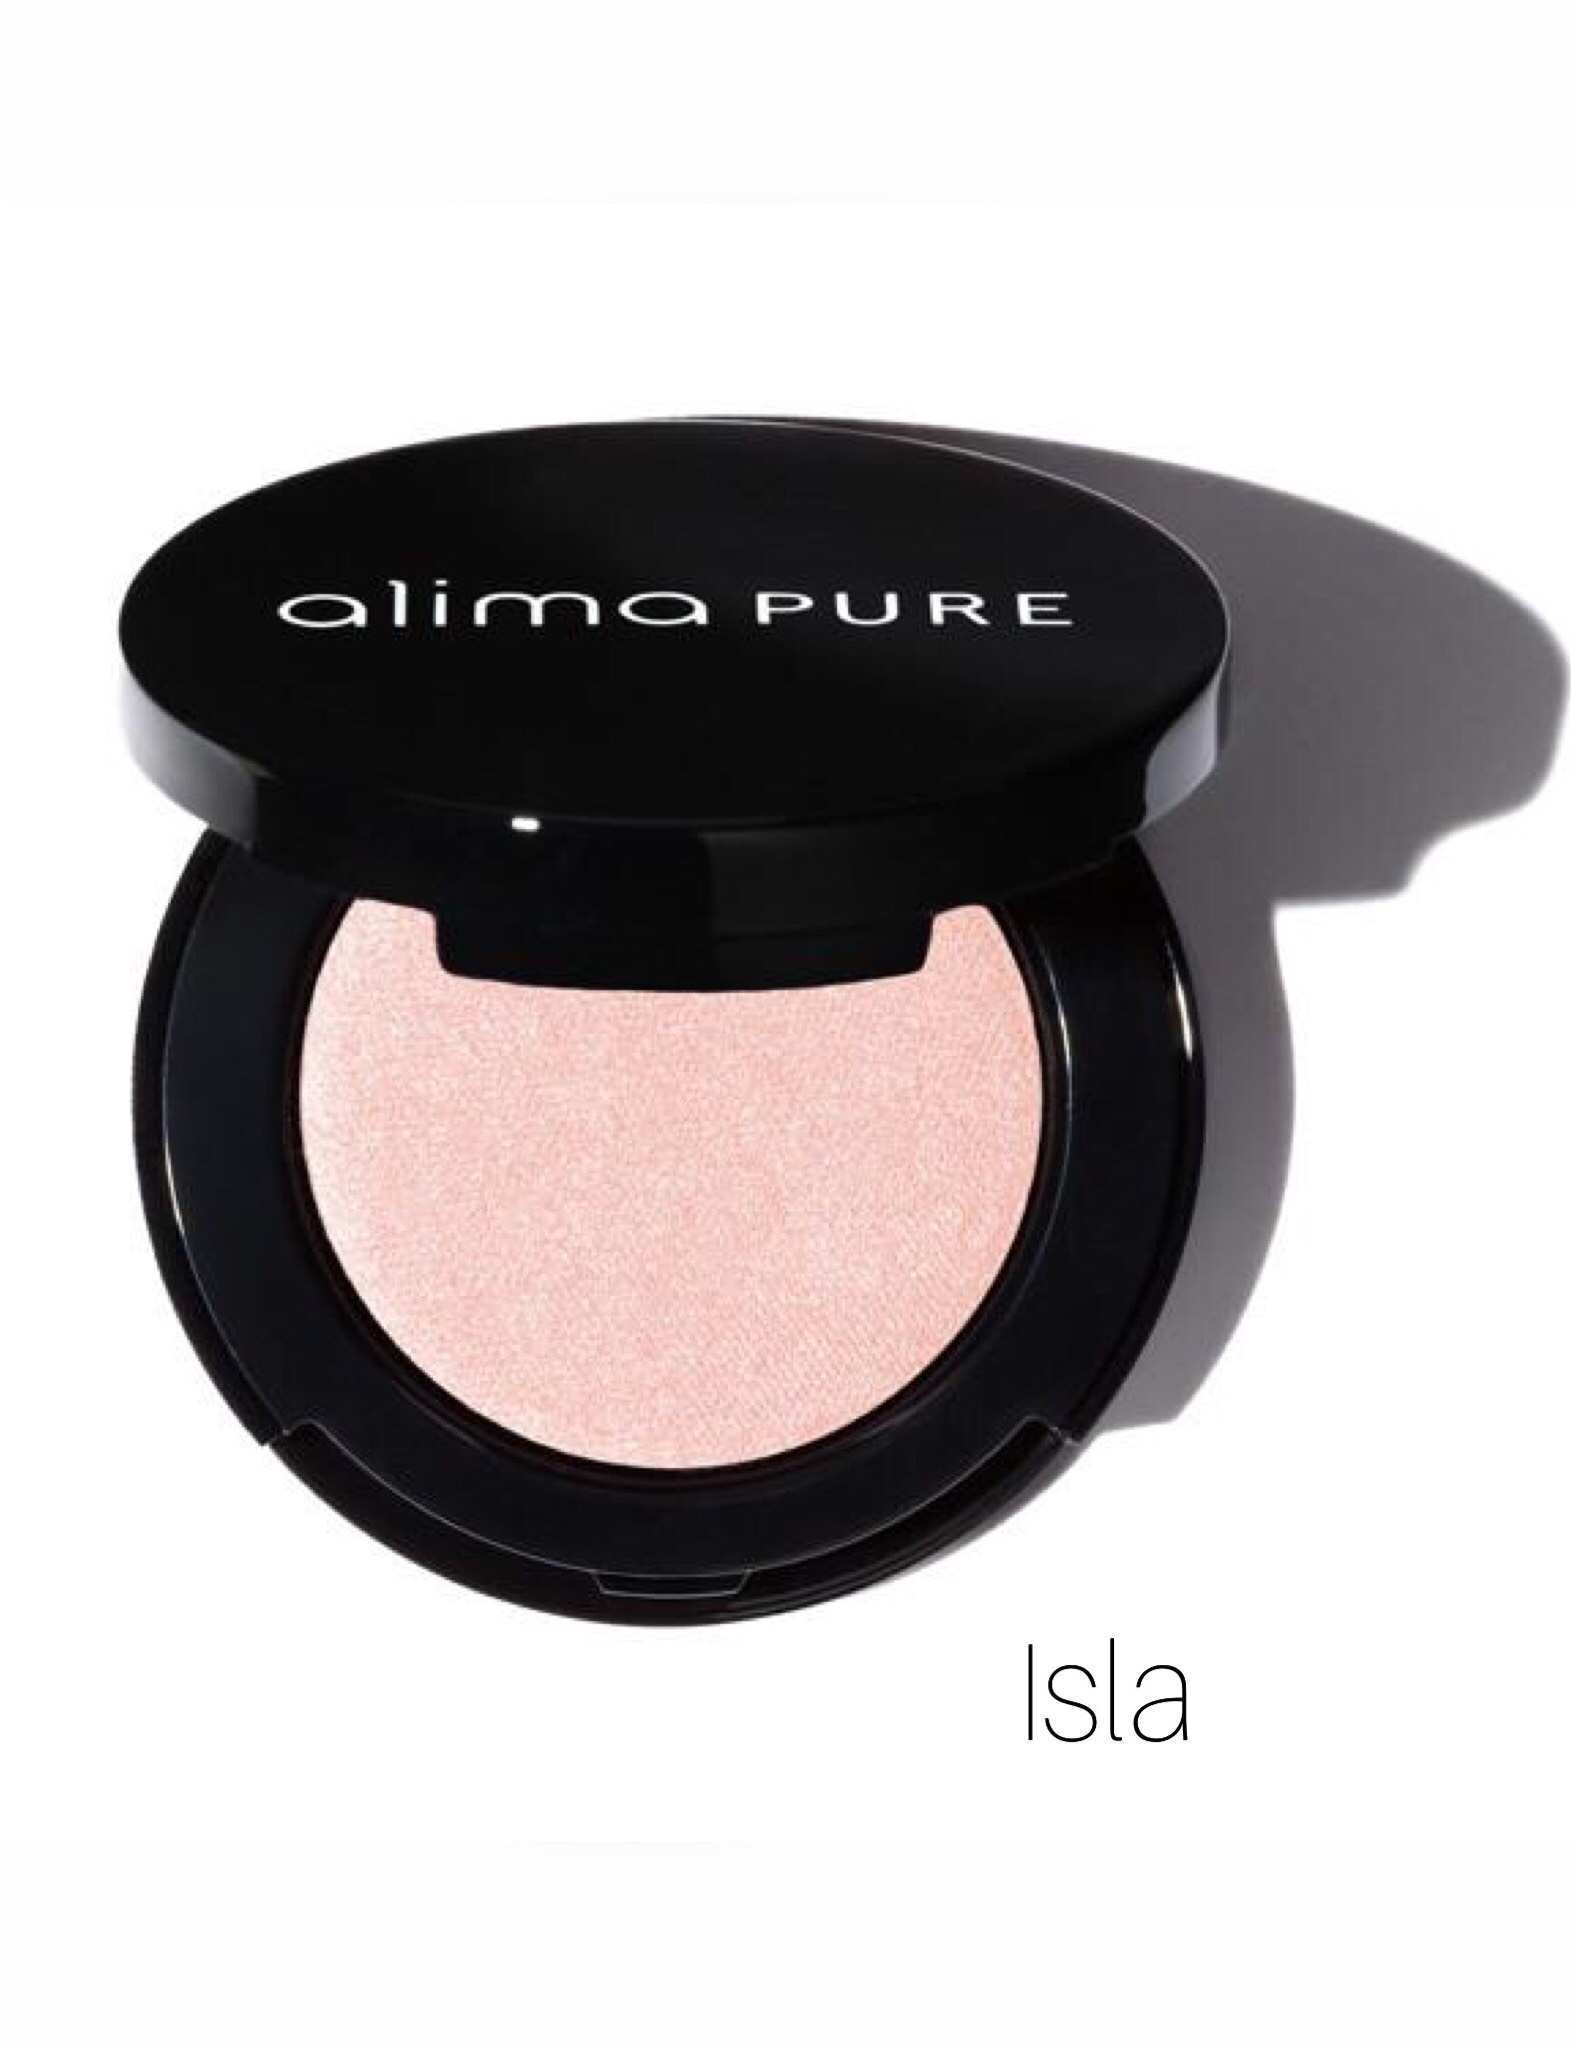 alima PURE Pressed Eyeshadow with Compact - 4